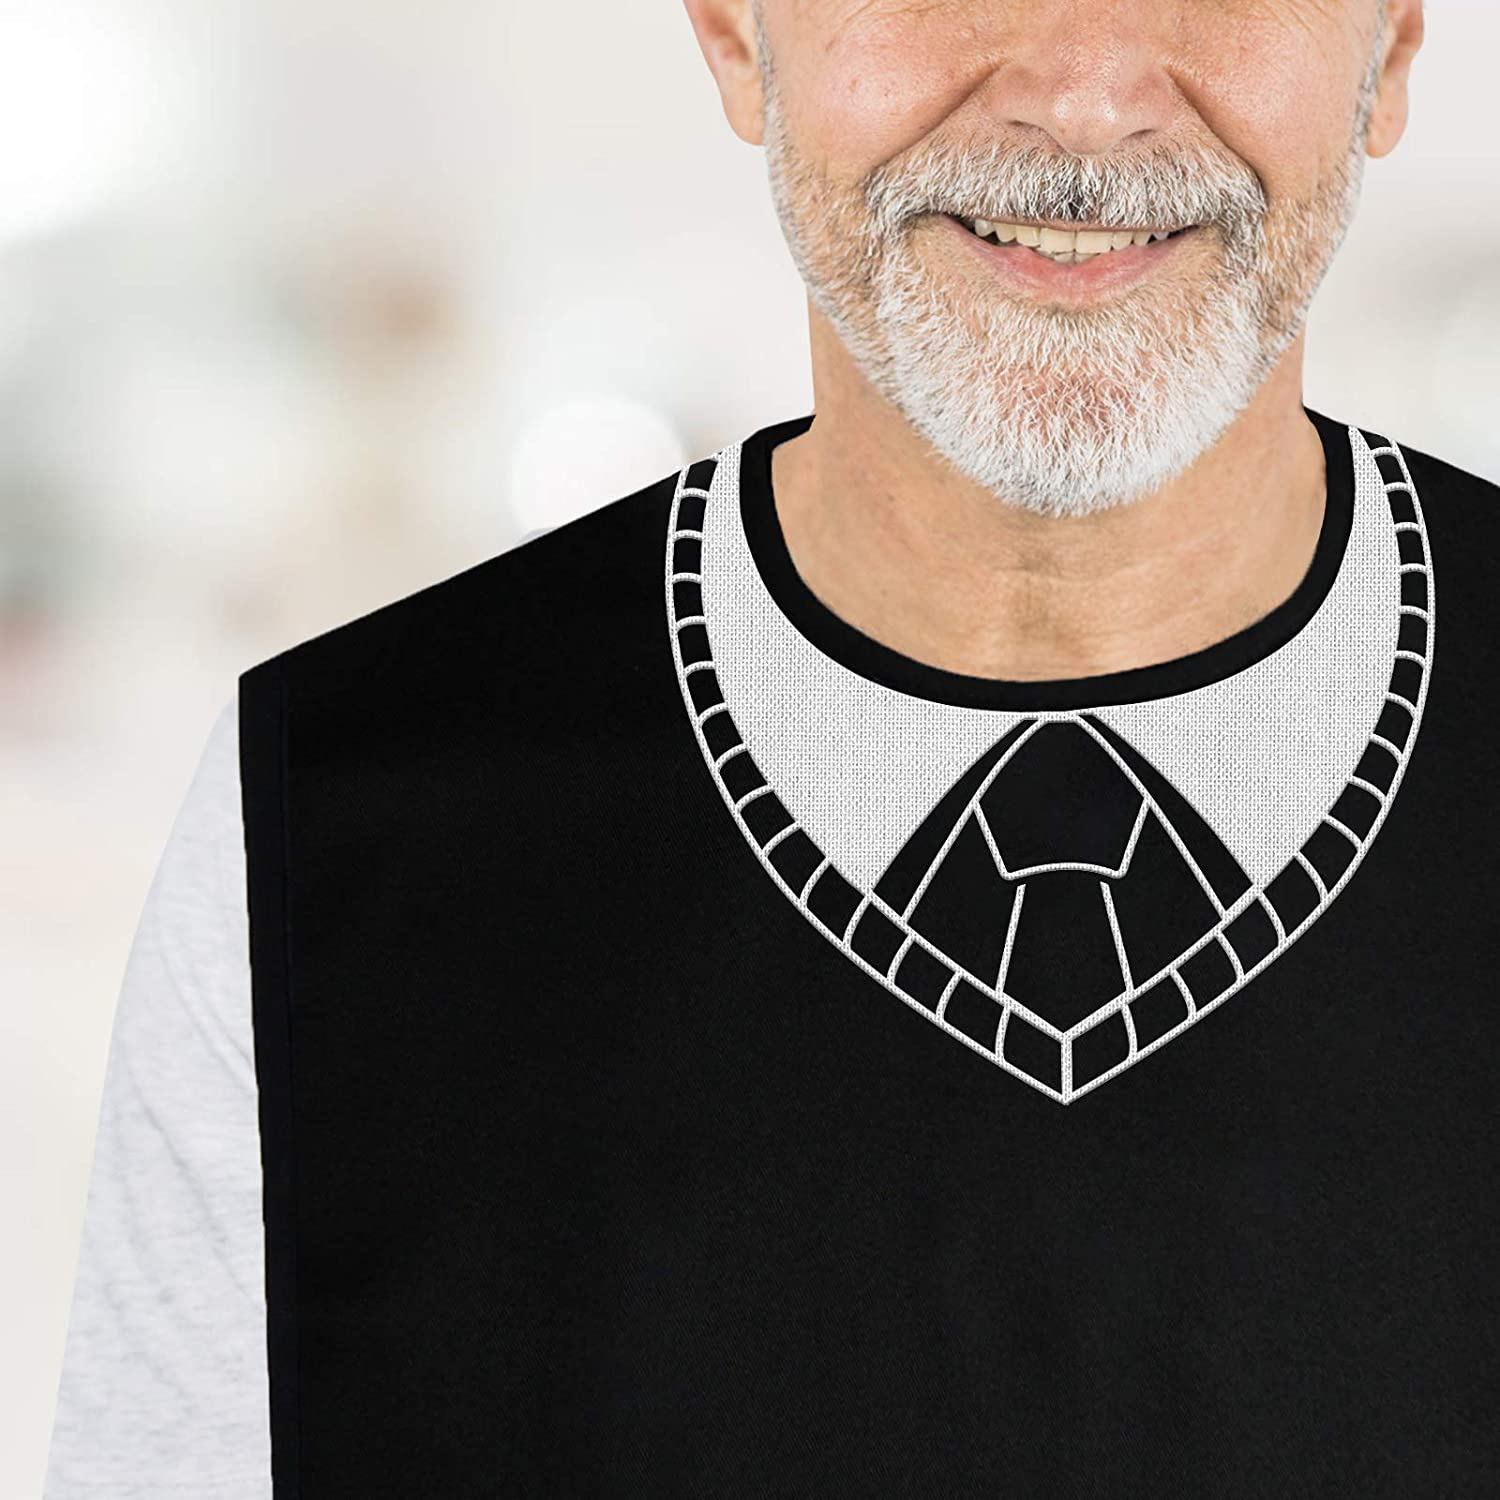 Sunlit Embroidered Adult Bib For Men Eating Waterproof Soft Reusable Clothing Protector With Crumb Catcher, V-Neck Sweater Vest With Tie: Clothing